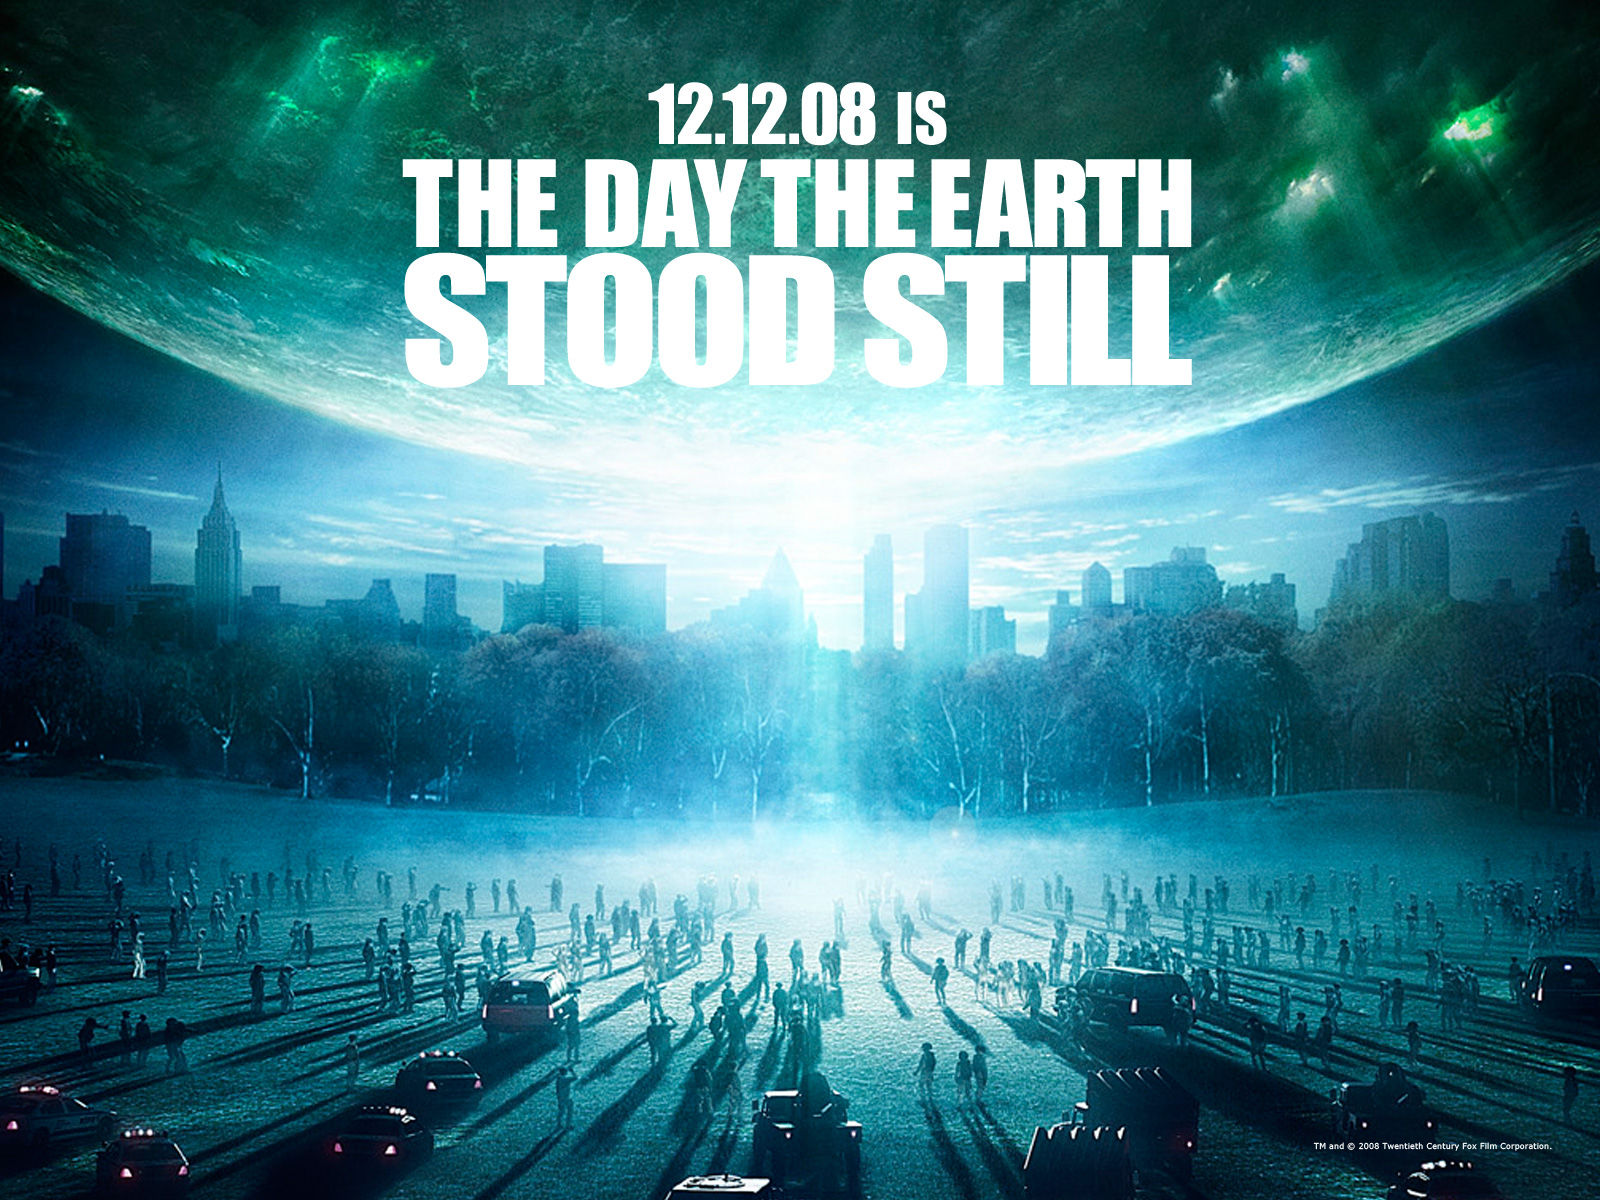 http://ryanericsongcanlas.files.wordpress.com/2009/04/the_day_the_earth_stood_still01.jpg